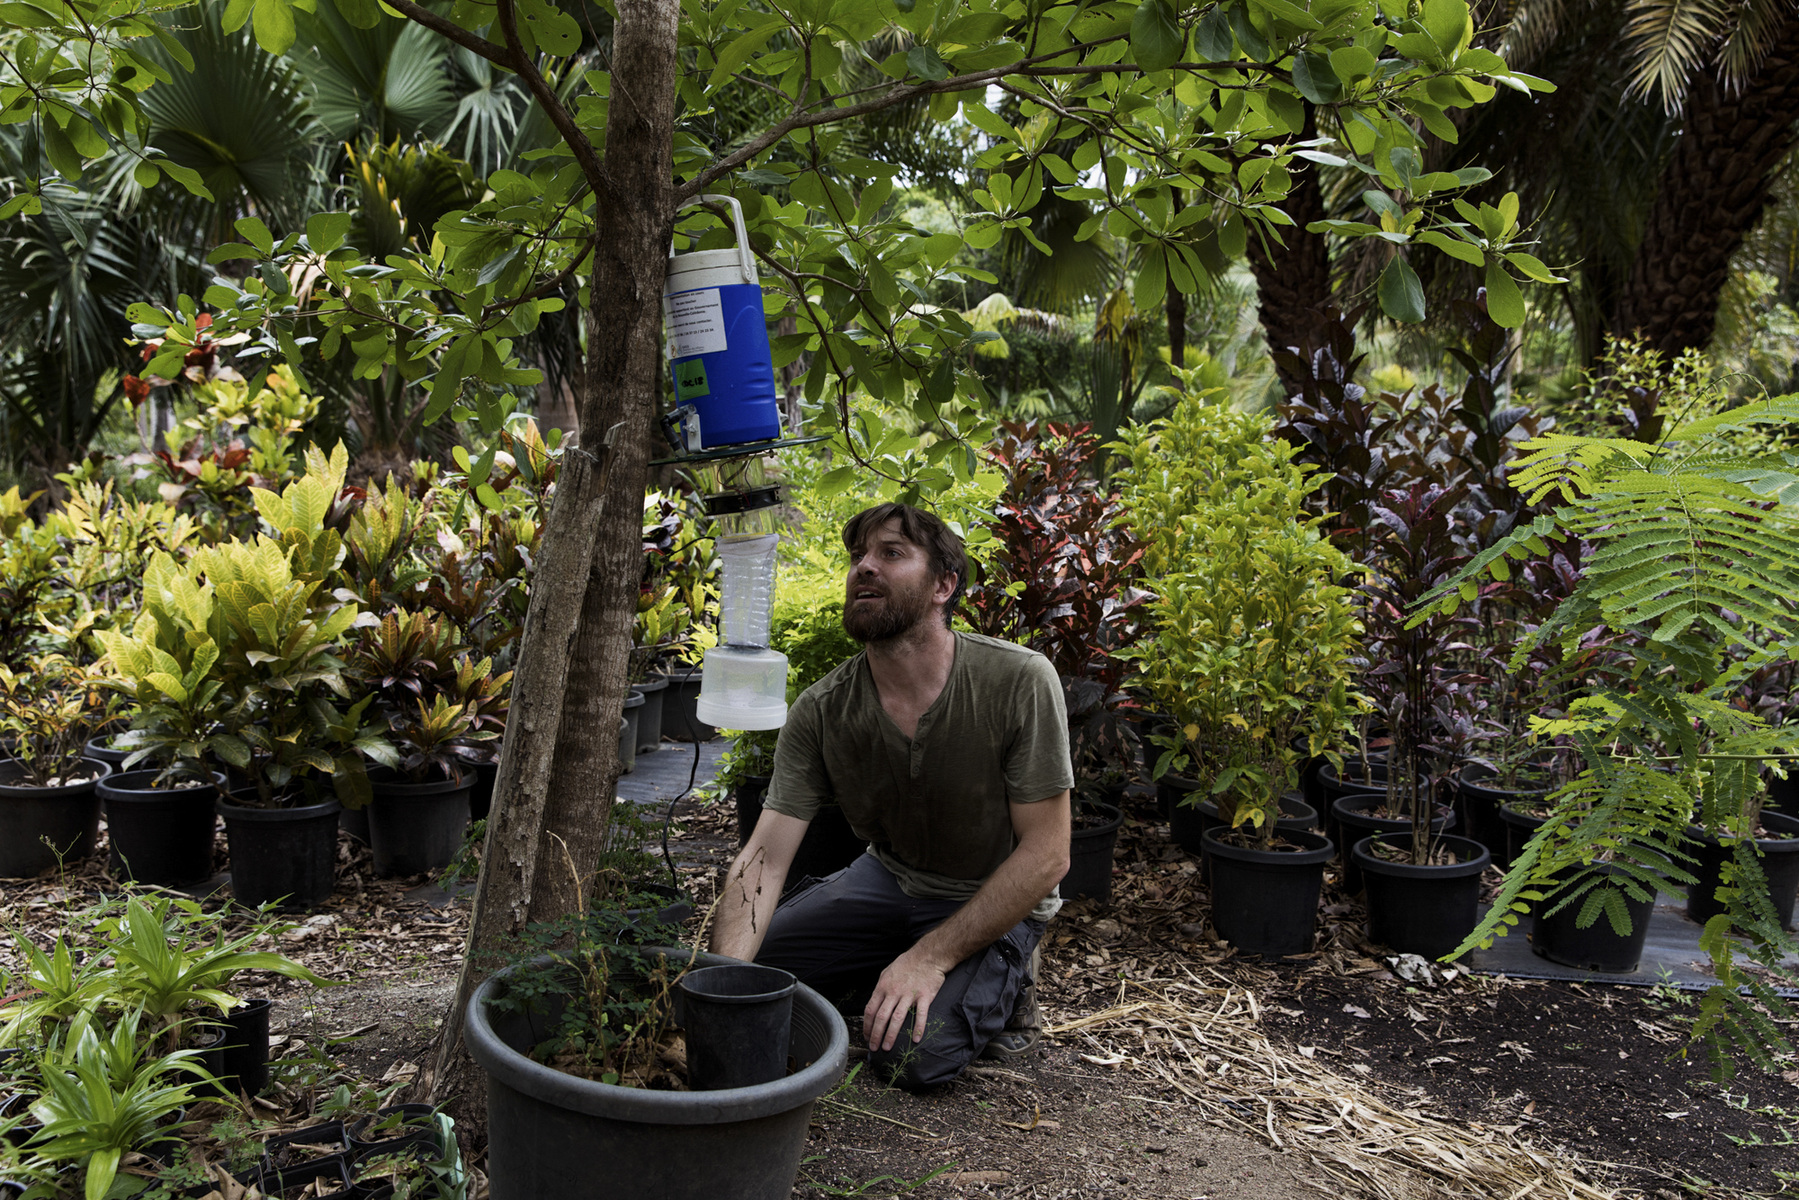 Adrienne Surprenant - 10/01/2019, Nouméa, New Caledonia—Arnaud, the entomologist of DASS, is putting up mosquito traps each week in a plant breeding enterprise close to the airport. He uses the traps to detect if any intrusion of new mosquito species, and monitor the endemic species of mosquitoes present on New Caledonia's island. He goes there every week, but once a month tours the whole island to do the same. The Aedes Aegypti arrived in New Caledonia around the 1860s but was only detected on the whole territory around a hundred years later. This detection of mosquito is key to follow the International Sanitary rules, to protect the territory and the countries with which it does commerce, or has airplane and boat circulation.